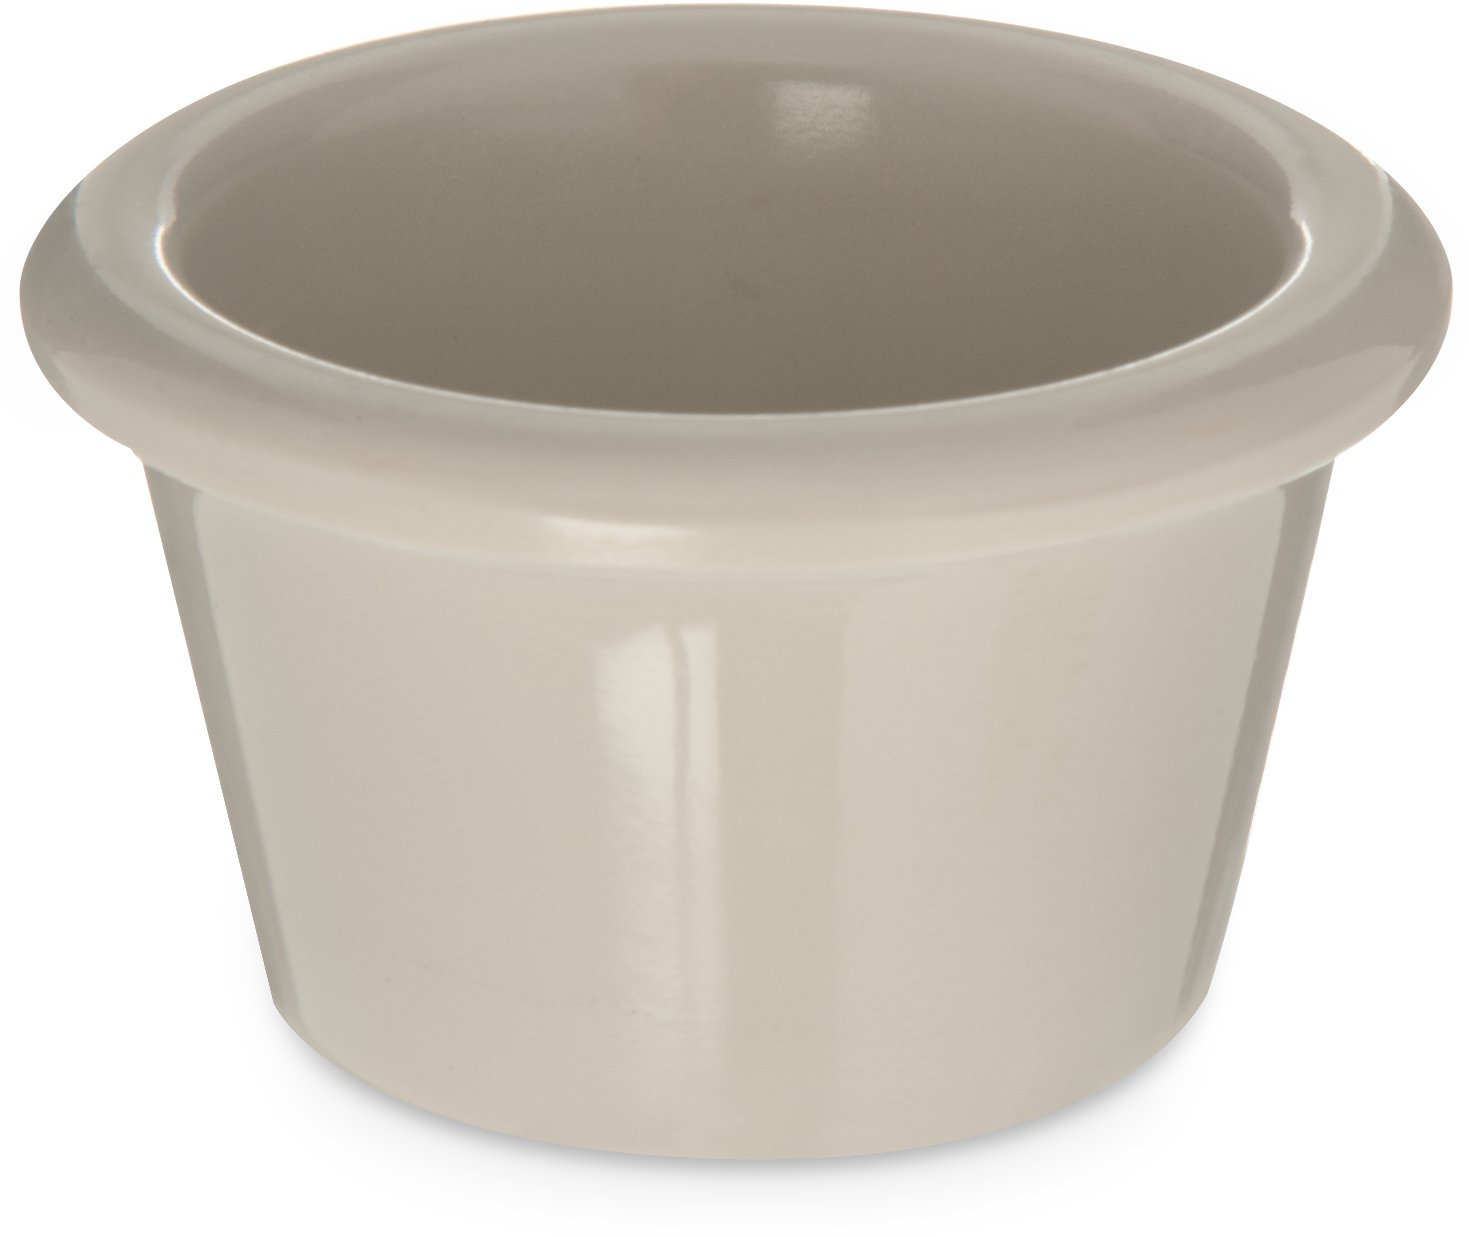 Carlisle S27542 Melamine Smooth Ramekin, 1.5 oz. Capacity, Bone (Case of 48)